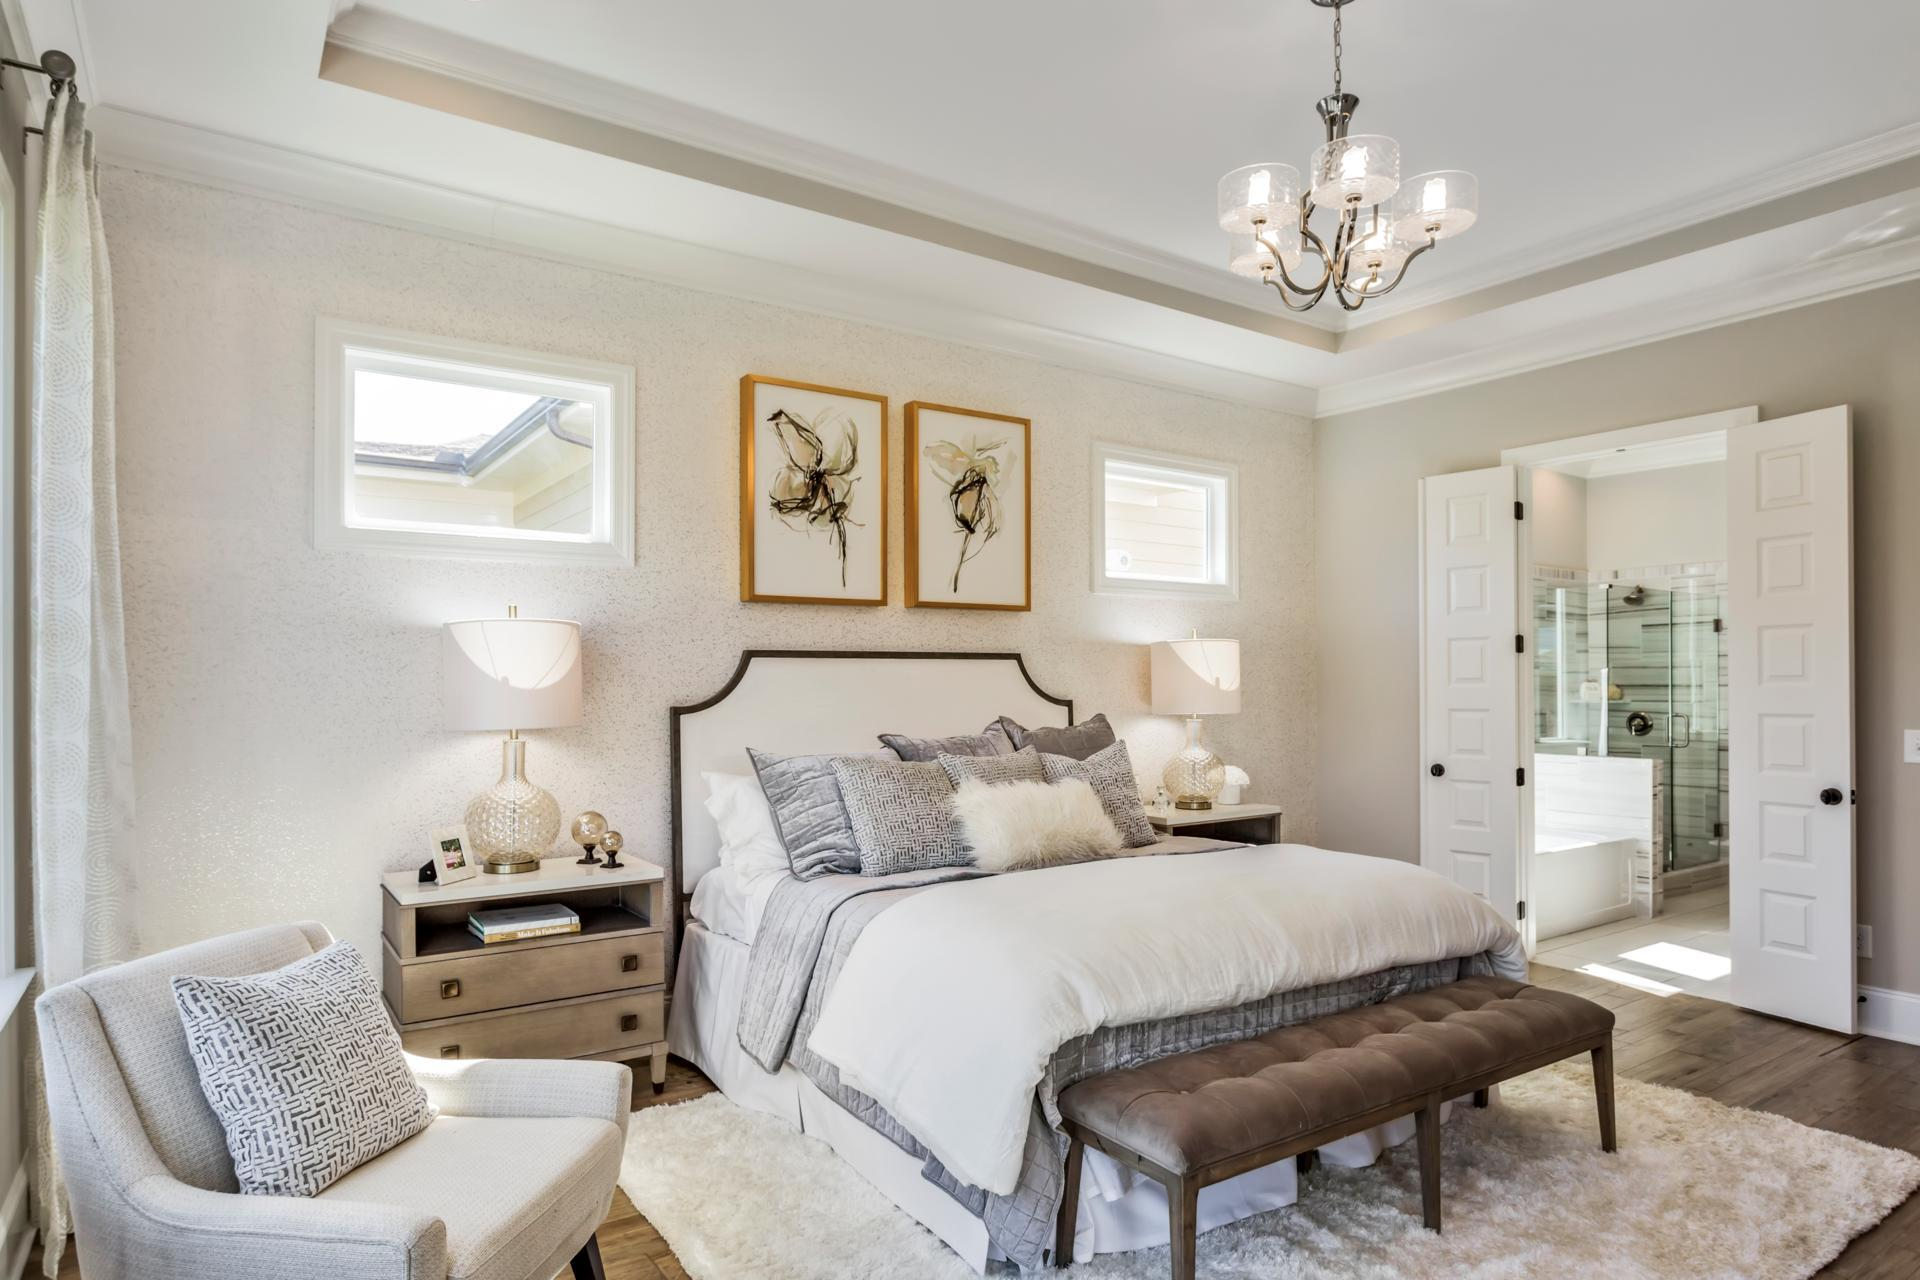 Bedroom featured in the Rowland By Drees Homes in Nashville, TN